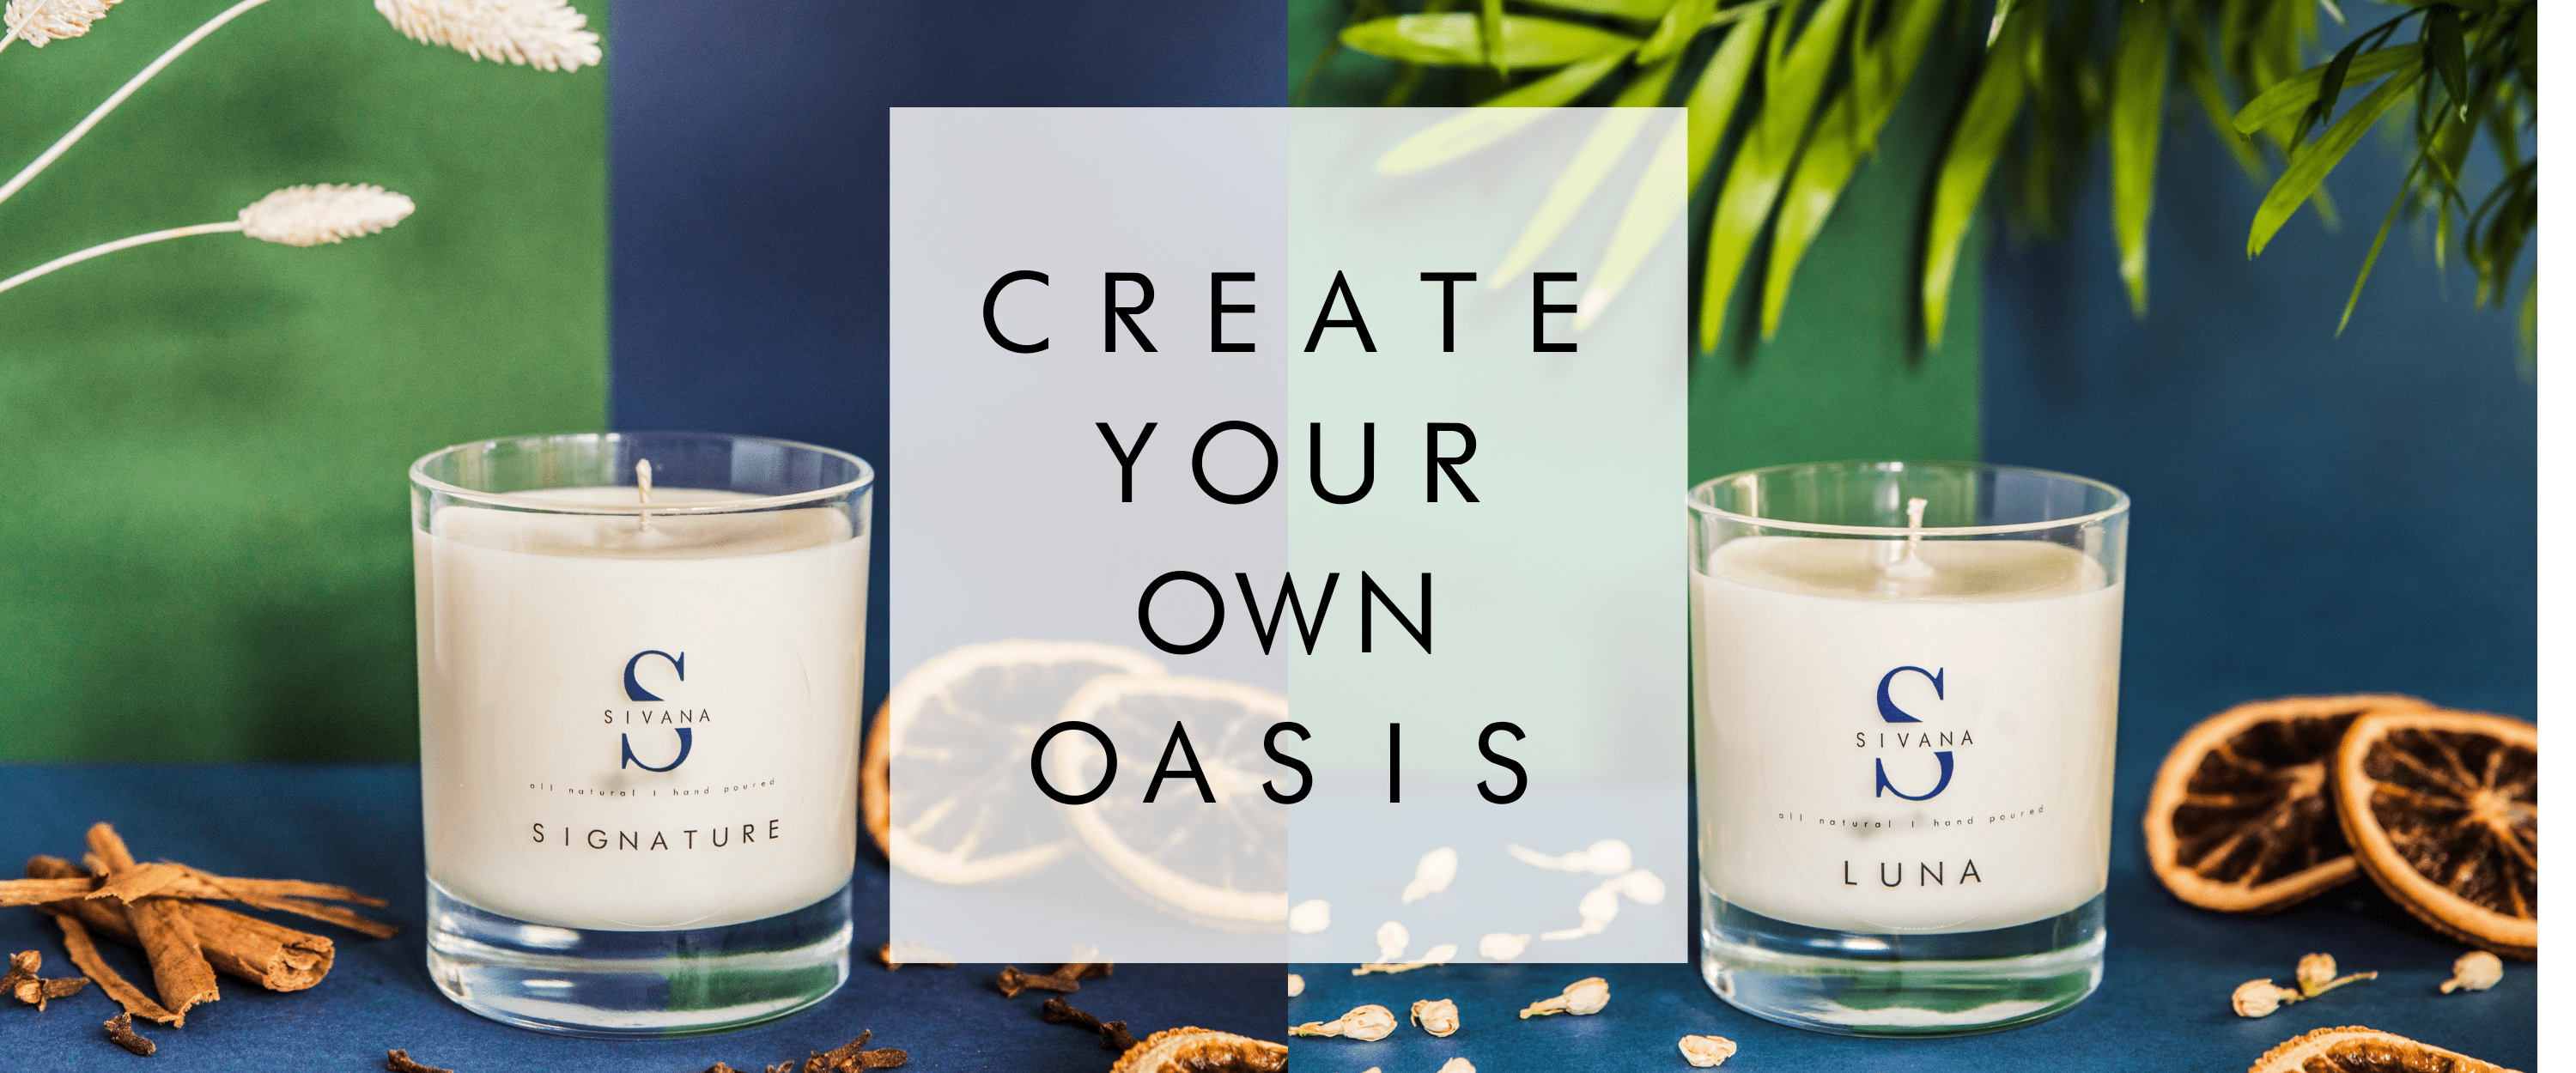 Create your own oasis